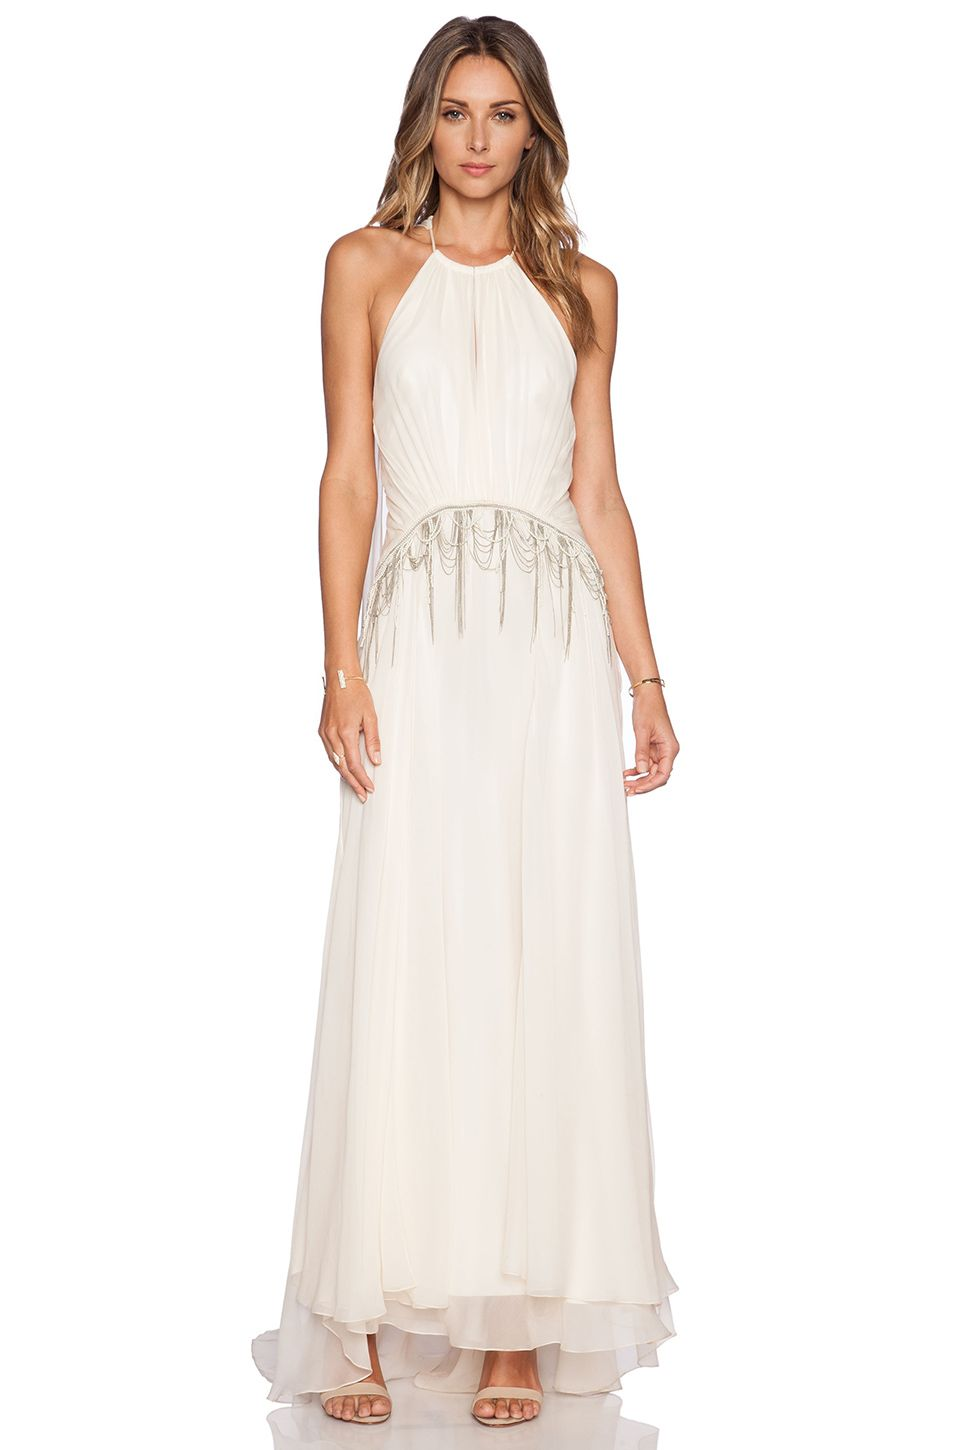 Haute Hippie Gathered Embellished Gown in Antique Ivoire | My style ...